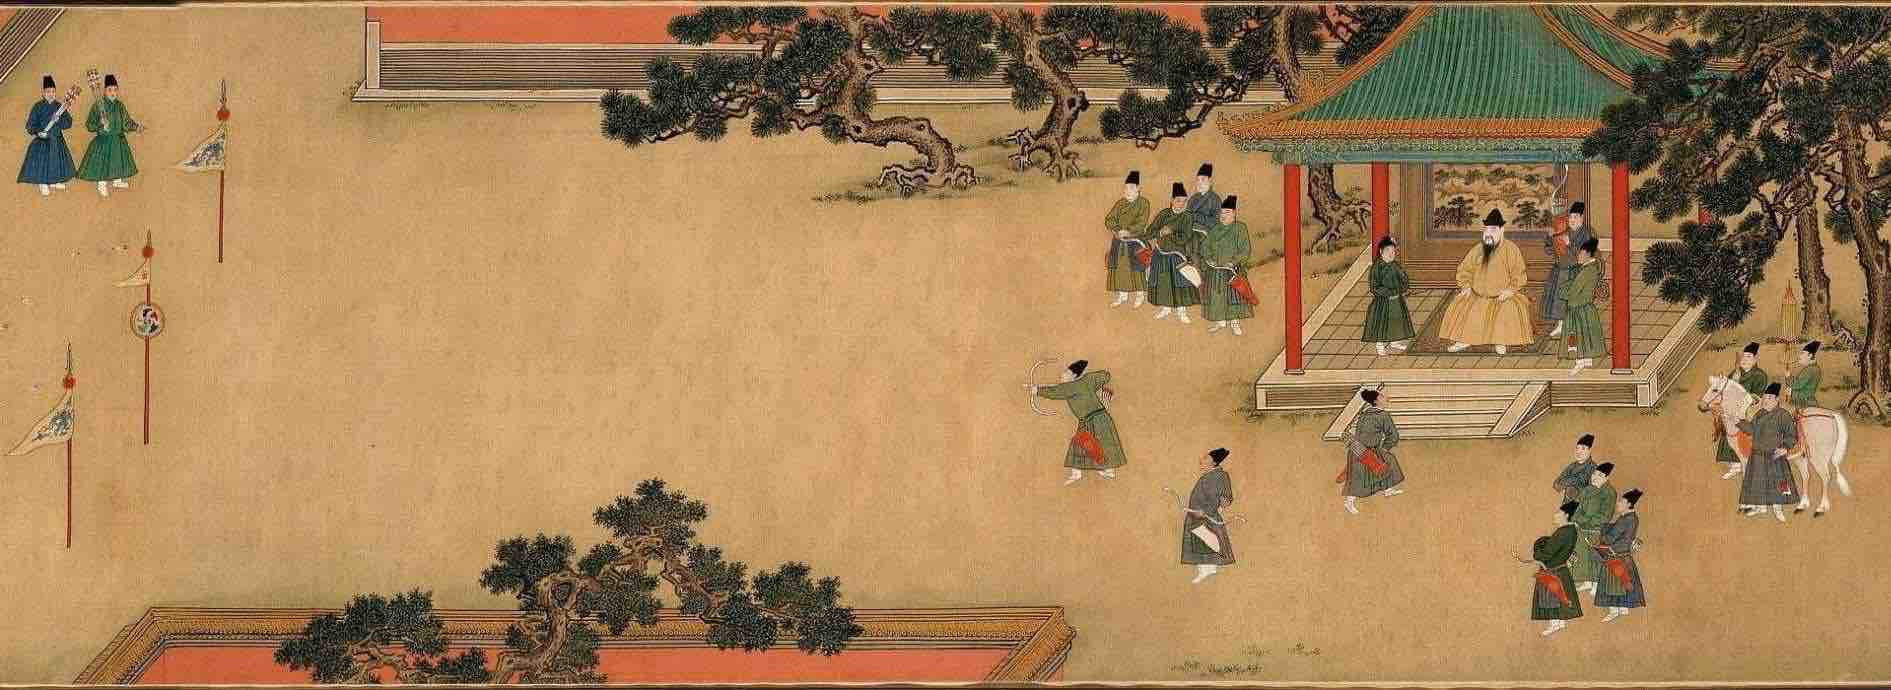 "Painting ""Zhu Zhanji Xing Le Tu"" Presenting Emperor Zhu Zhanji's Entertainment Activities in the Royal Palace Part"